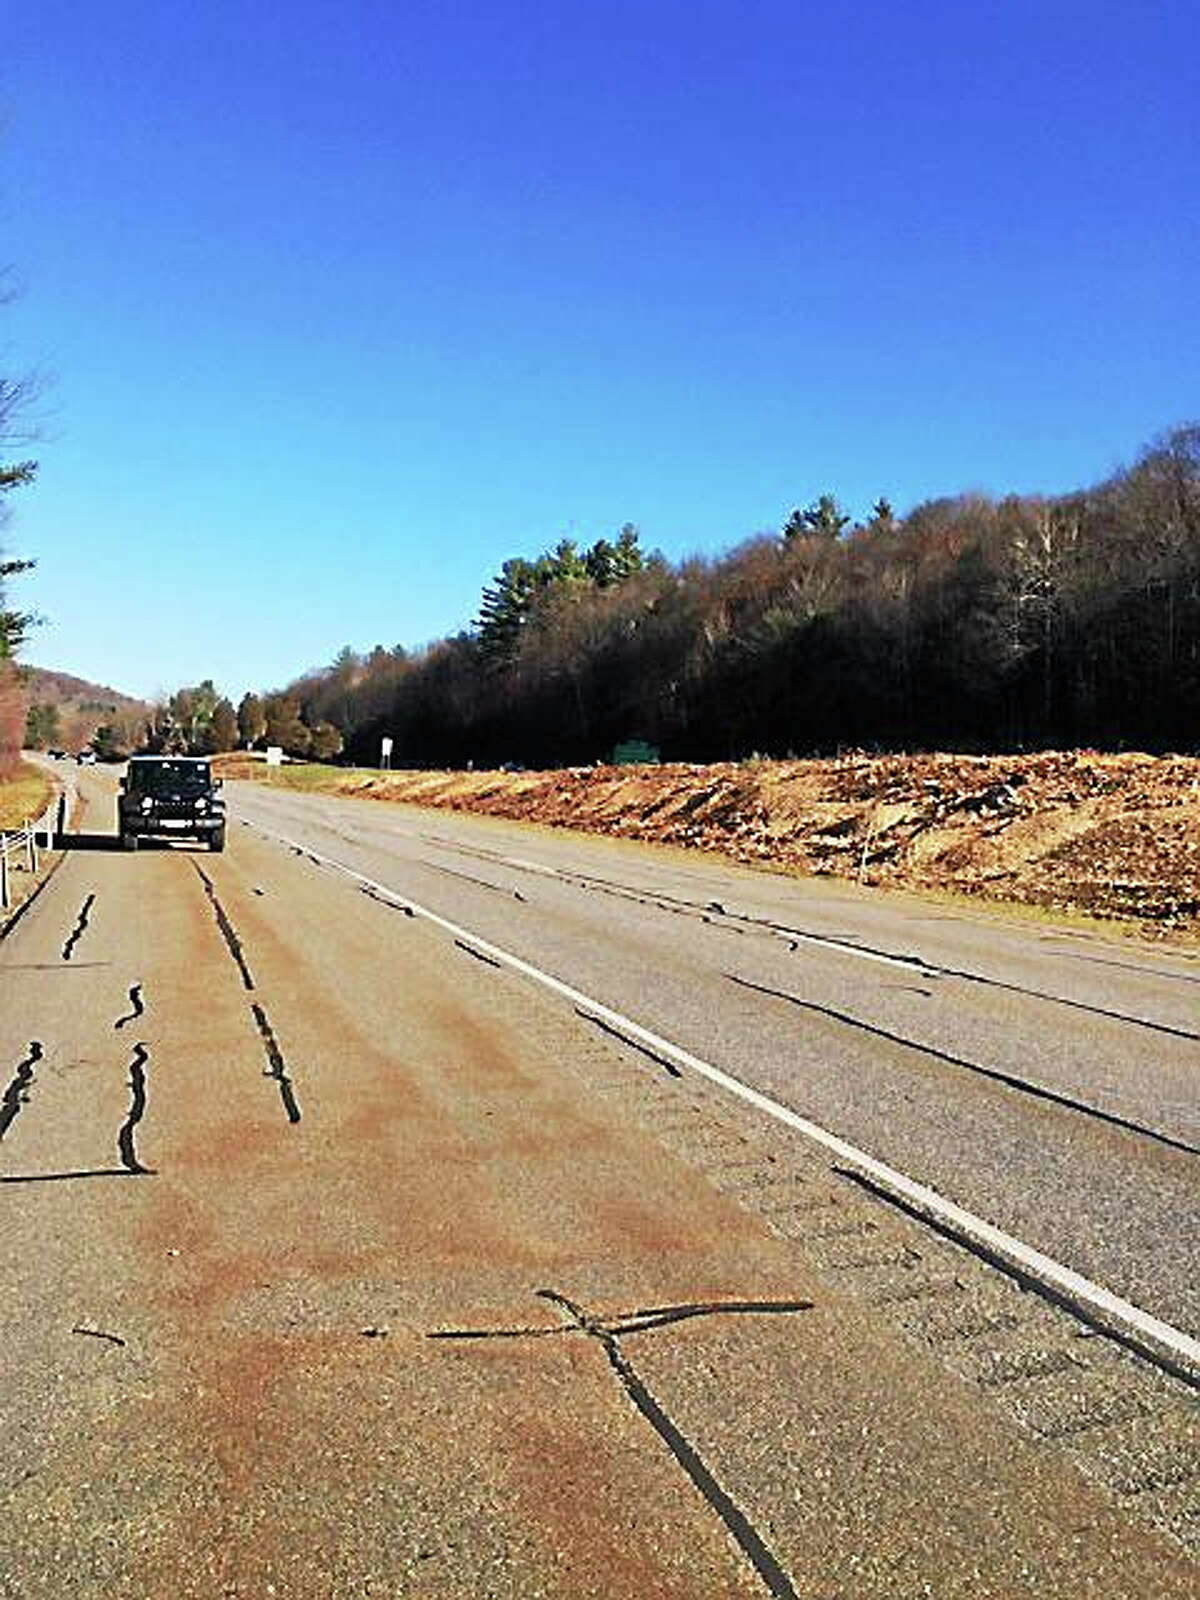 State Sen. Kevin Witkos wants answers from state Department of Transportation regarding the clear-cutting of trees in the Route 8 median between Winsted and Torrington.